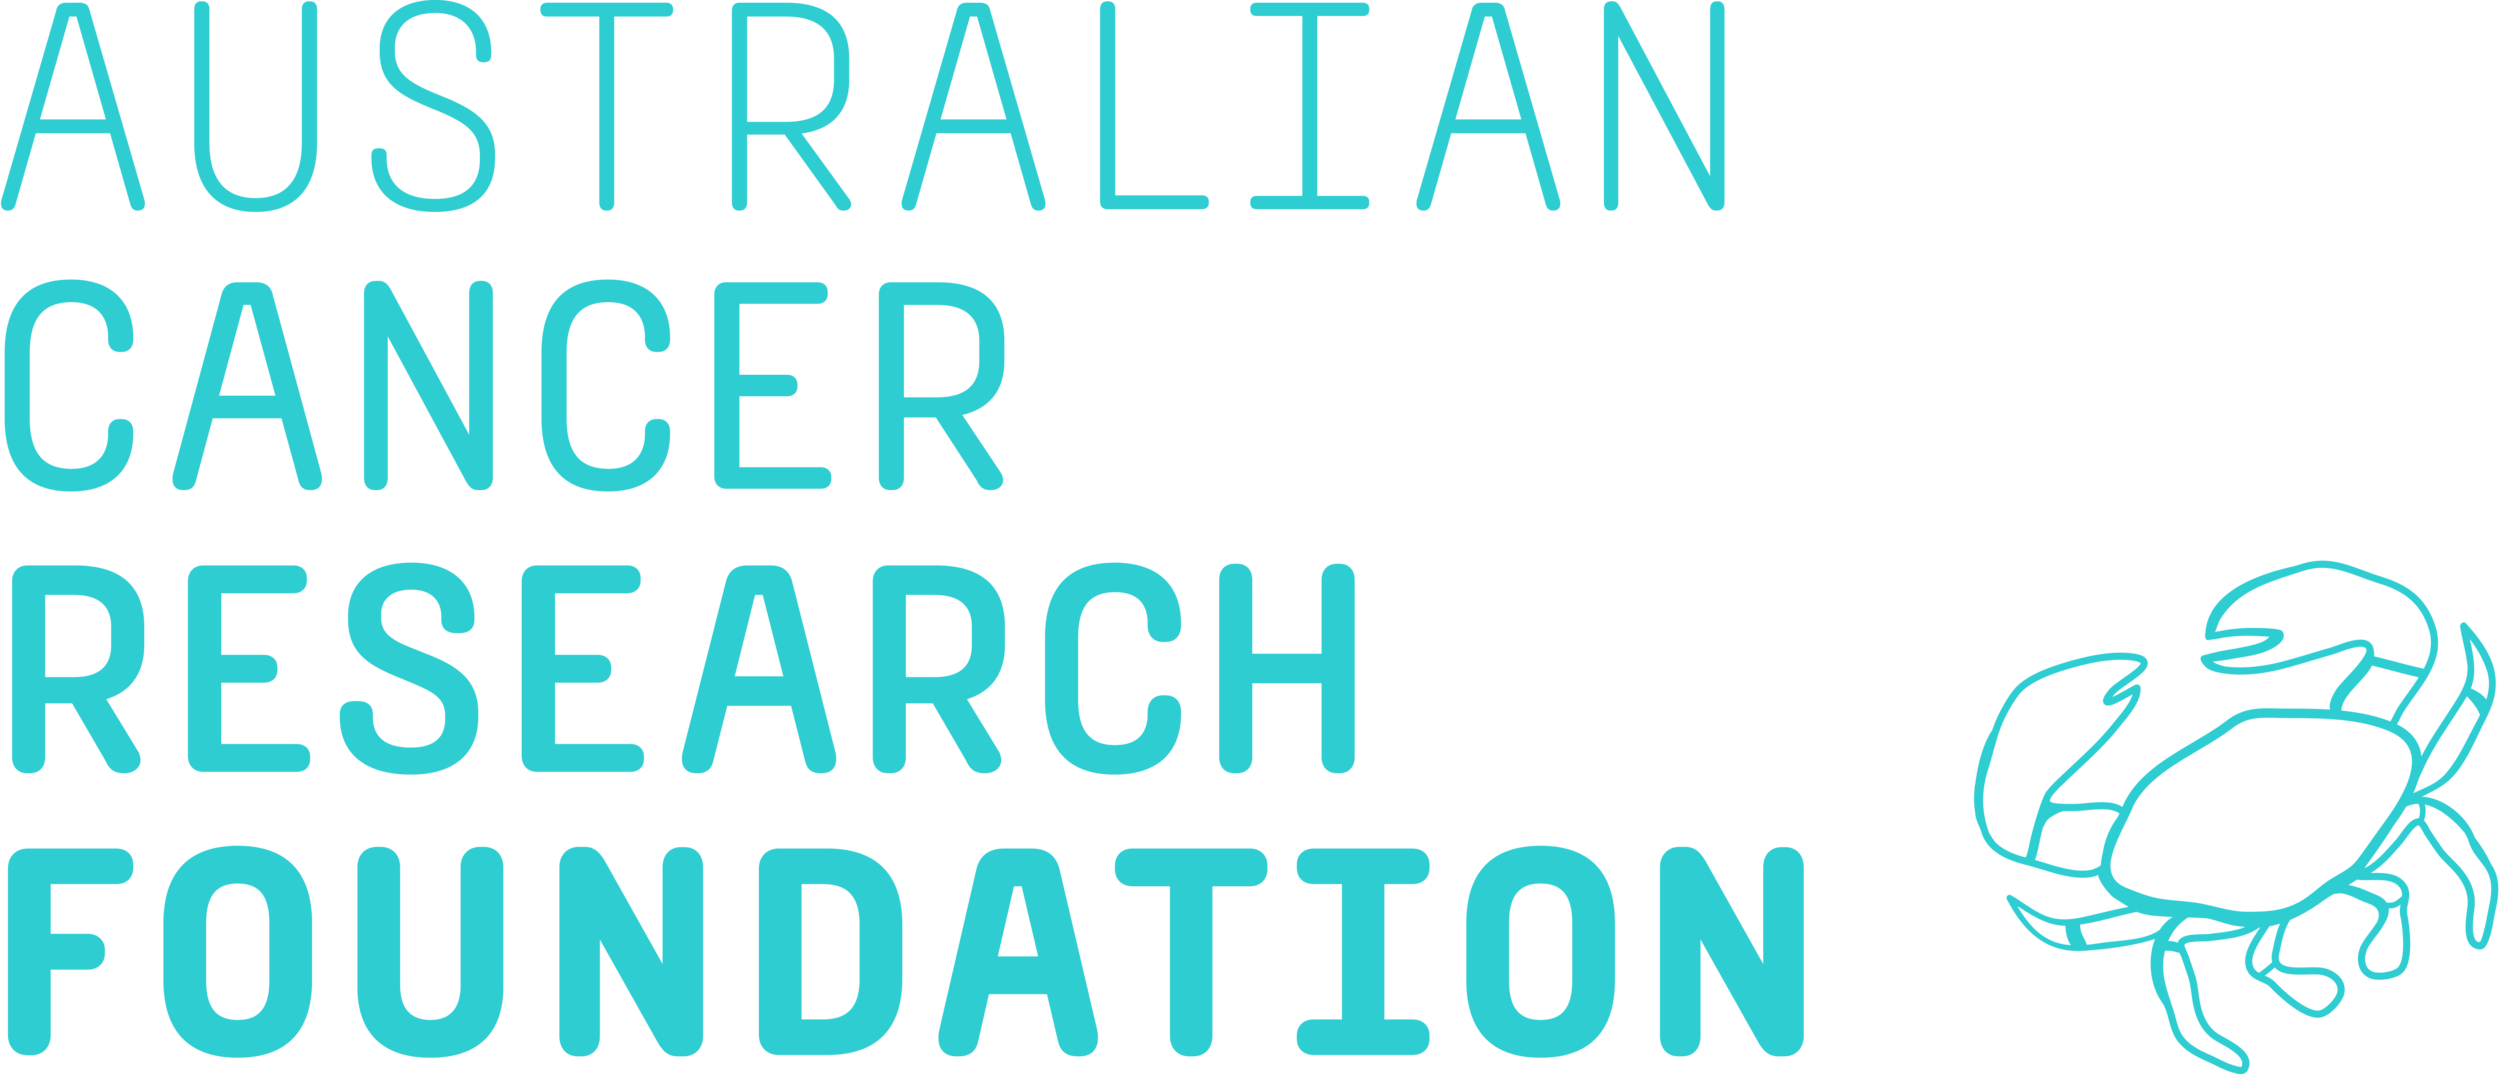 Proud Fundraiser for the Australian Cancer Research Foundation -